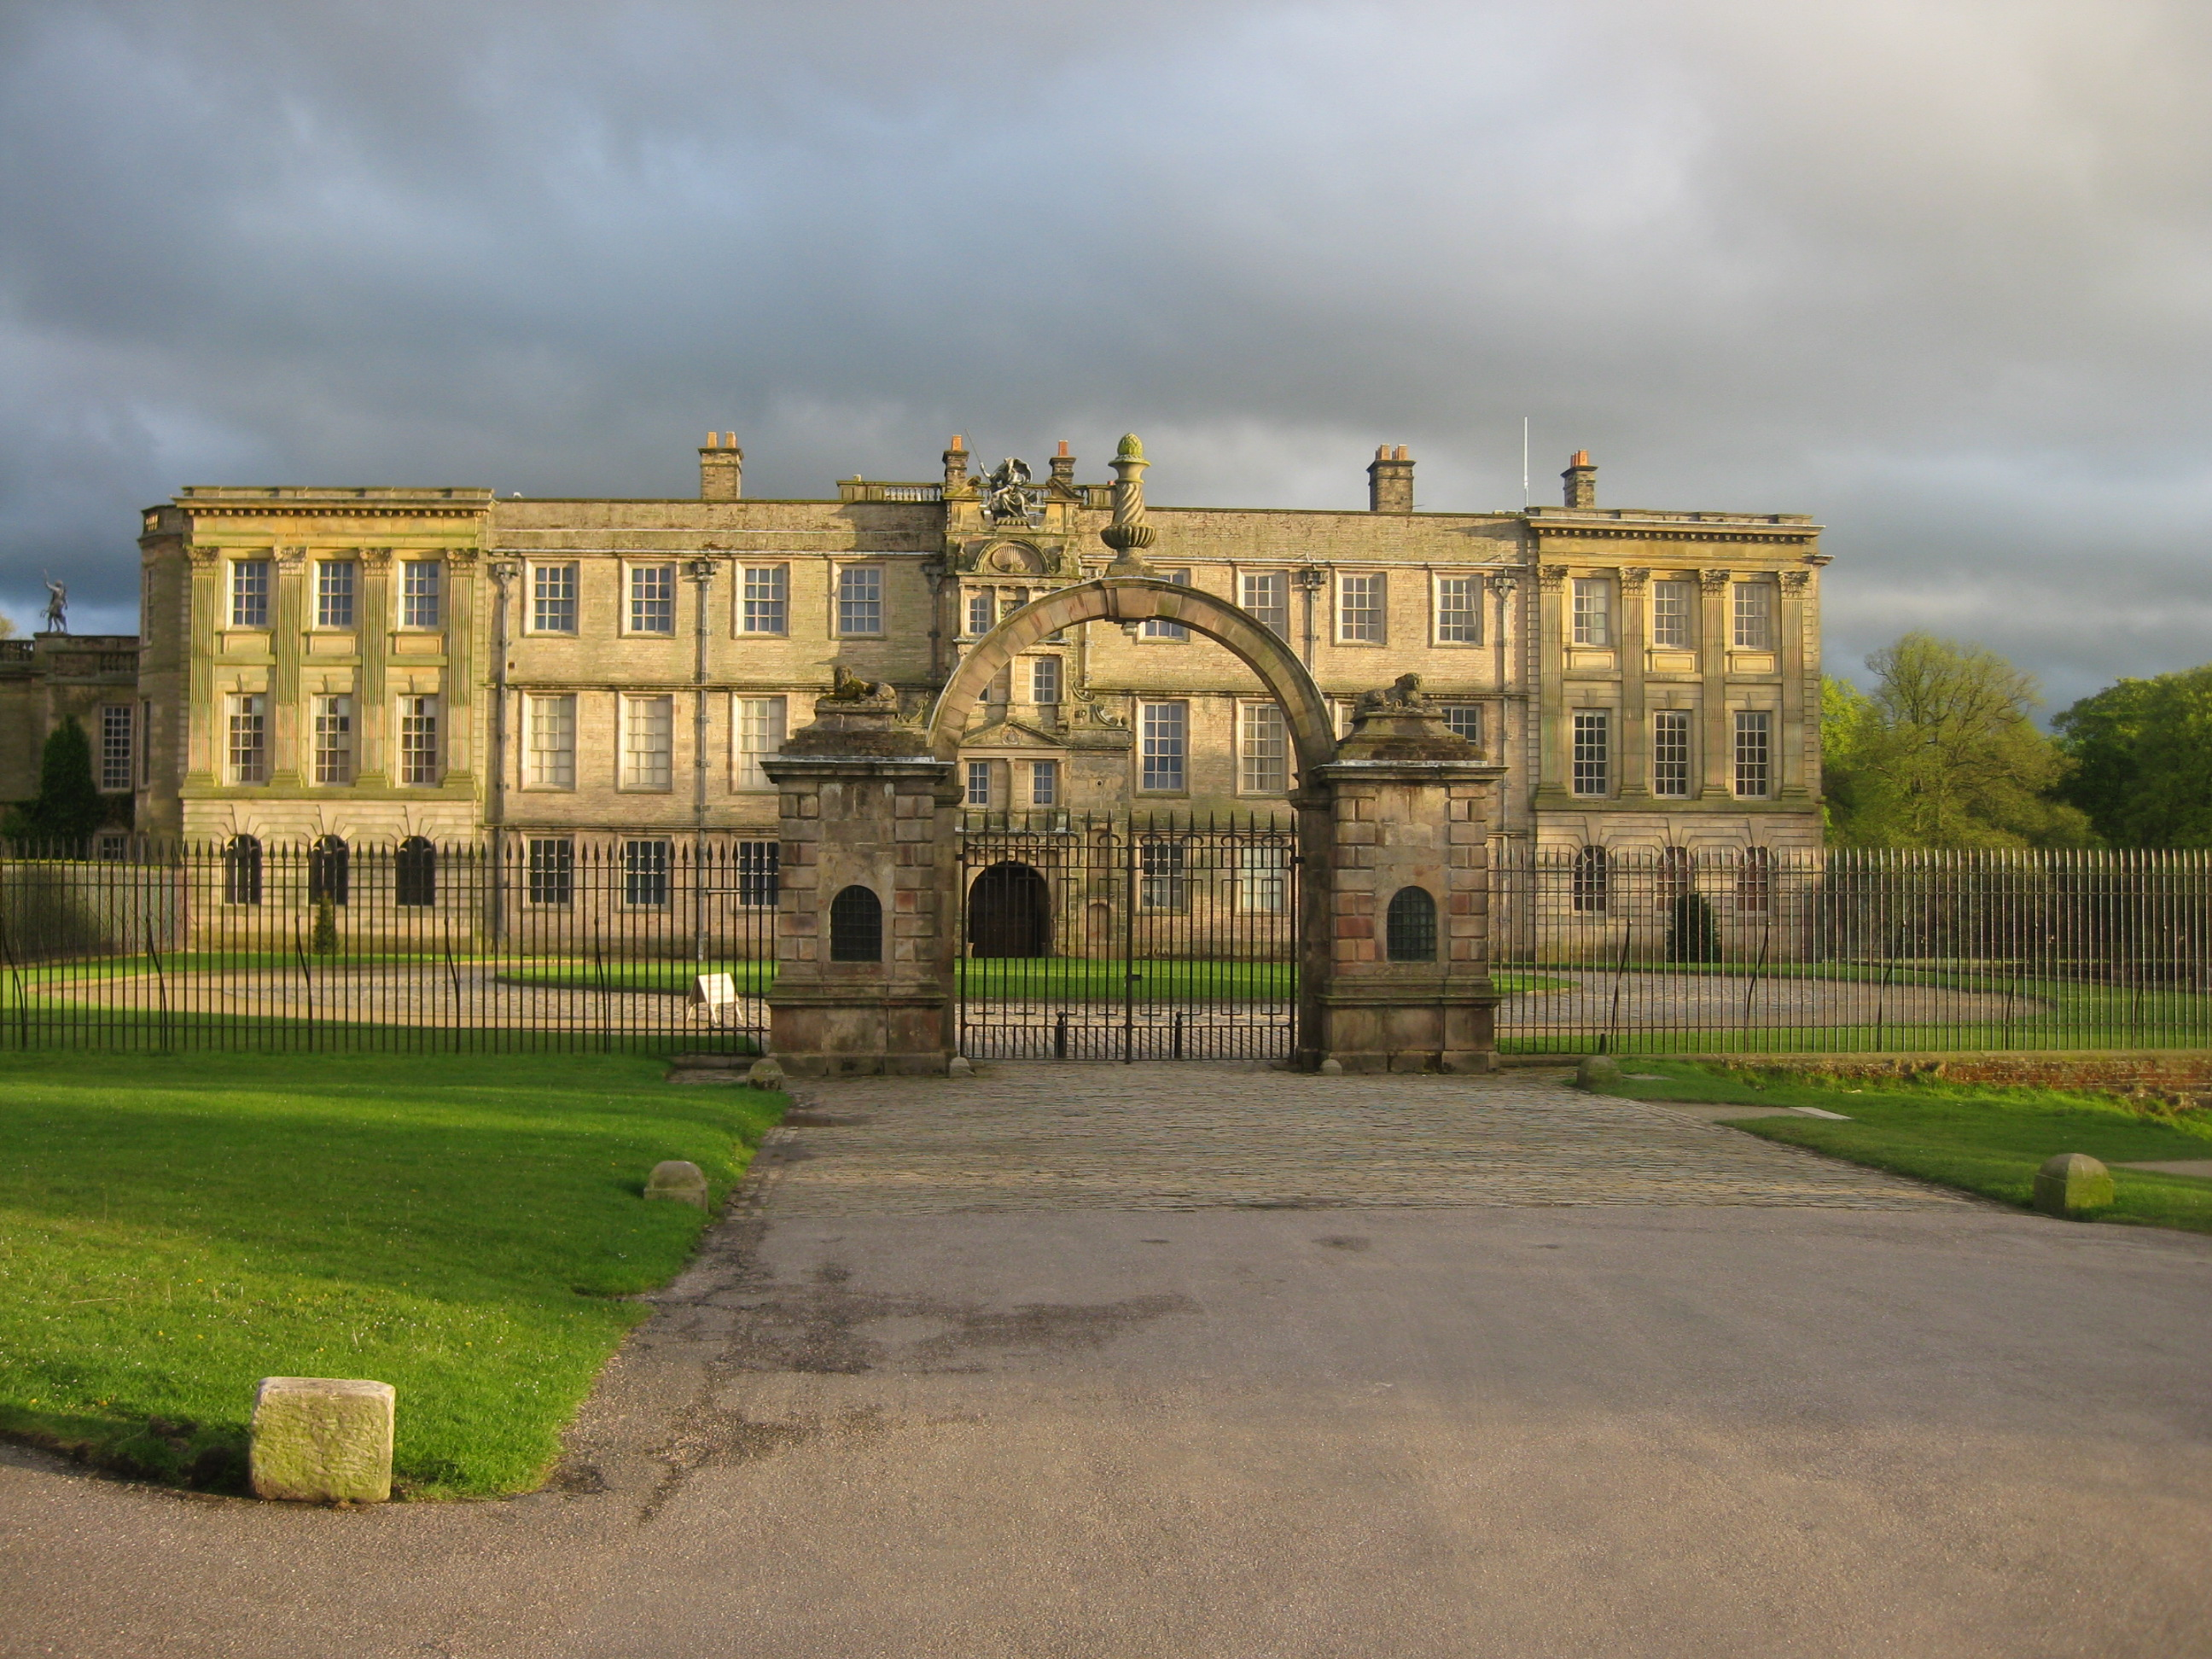 The West entrance to Lyme Park